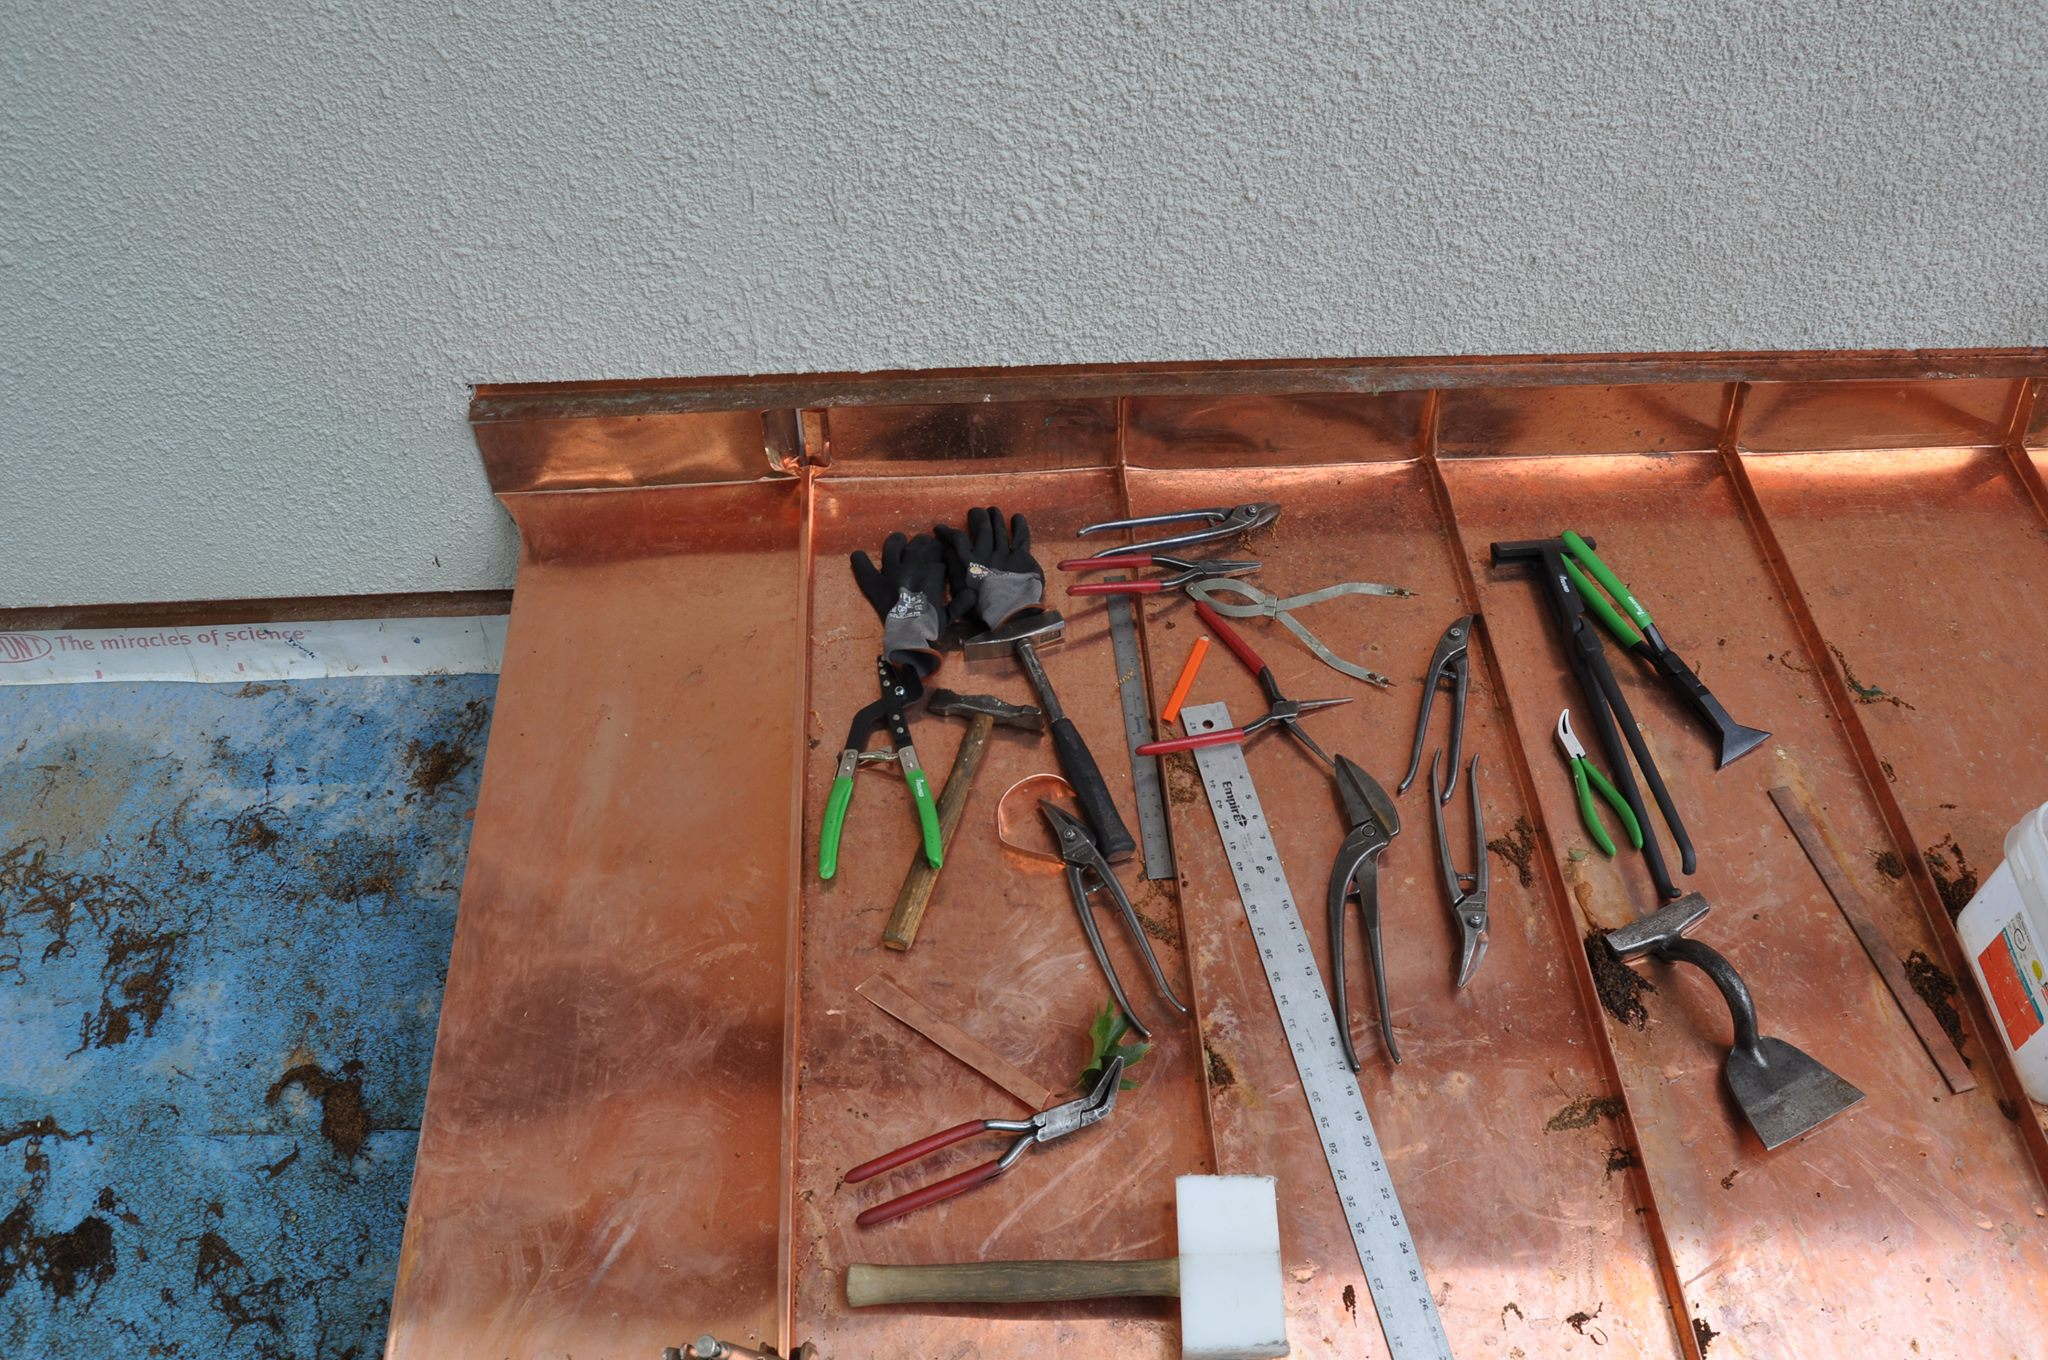 Cooper Roofing Job Pliers and Snips